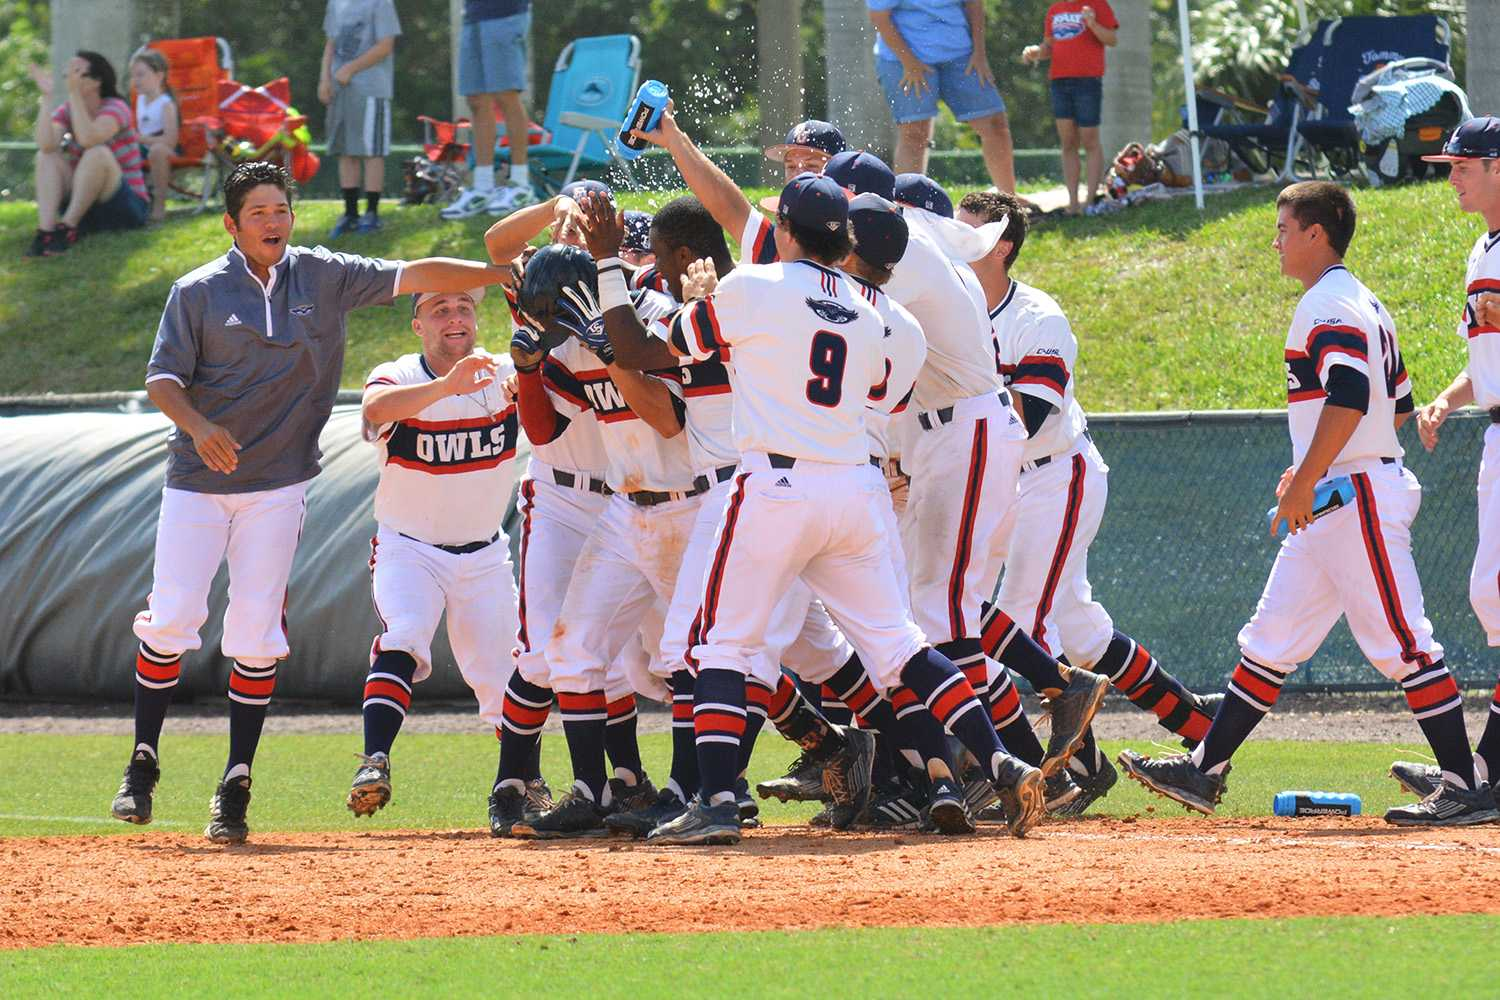 Third baseman Ricky Santiago is swarmed by his team as his extra innings sacrifice hit wins the Sunday game for the Owls. Michelle Friswell   Associate Editor